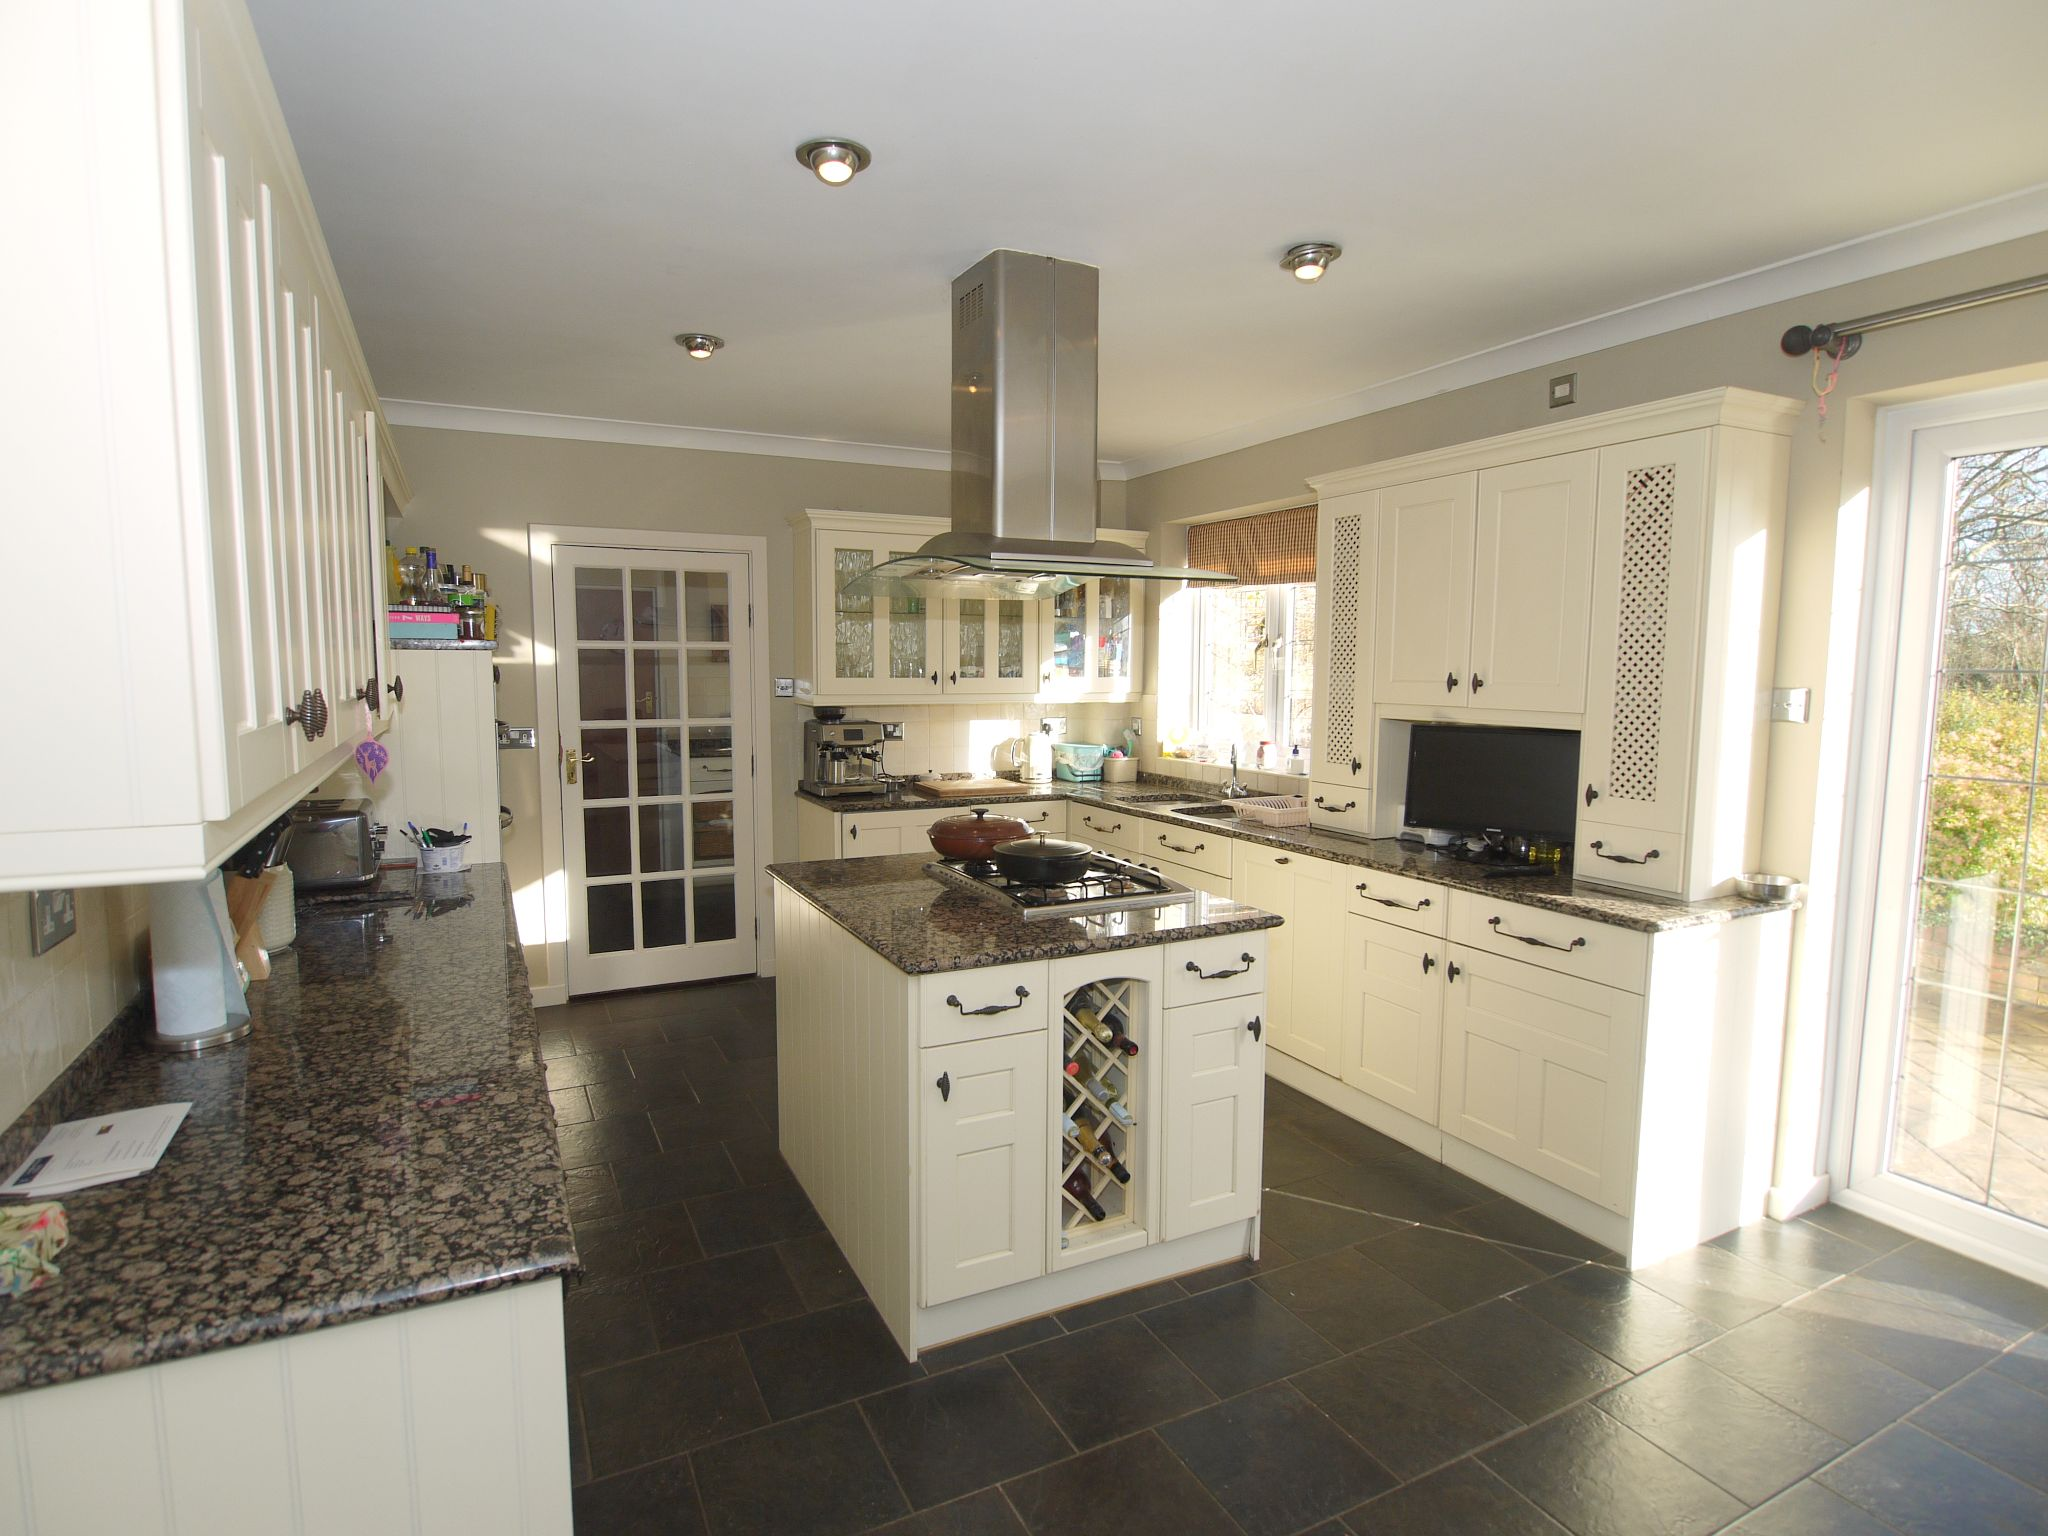 4 bedroom detached house For Sale in Farningham - Photograph 2